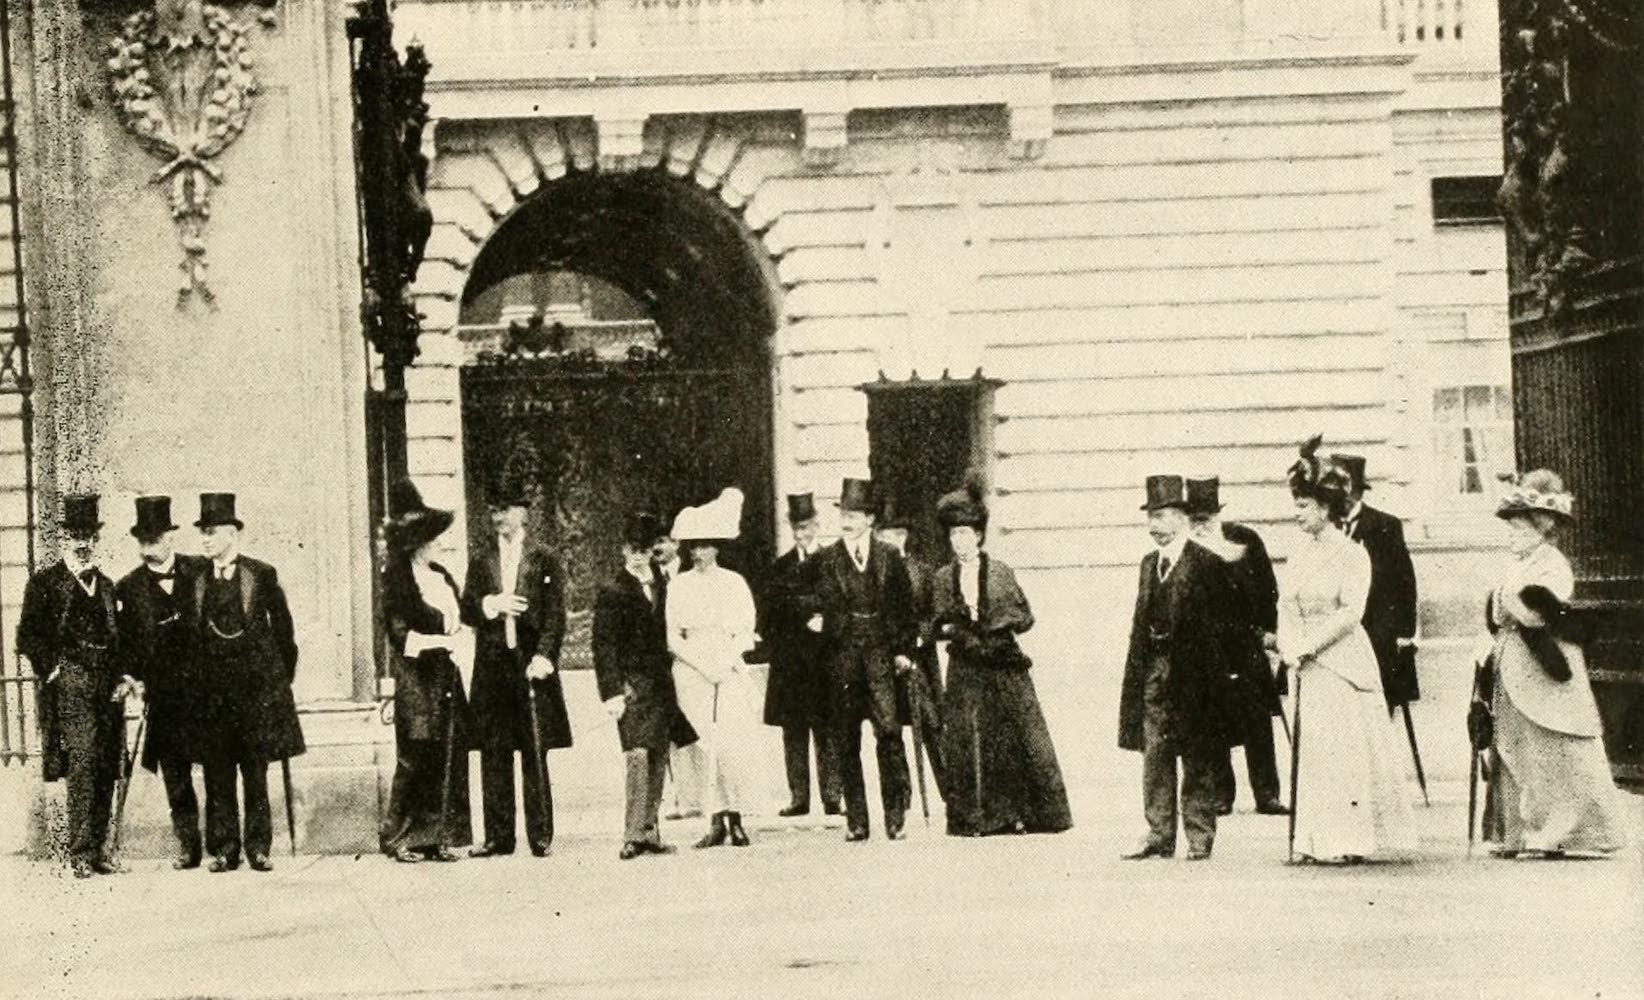 Laird & Lee's World's War Glimpses - King, Queen, Queen Alexandria, Prince of Wales, Princess Mary, and Prince of Connaught (1914)